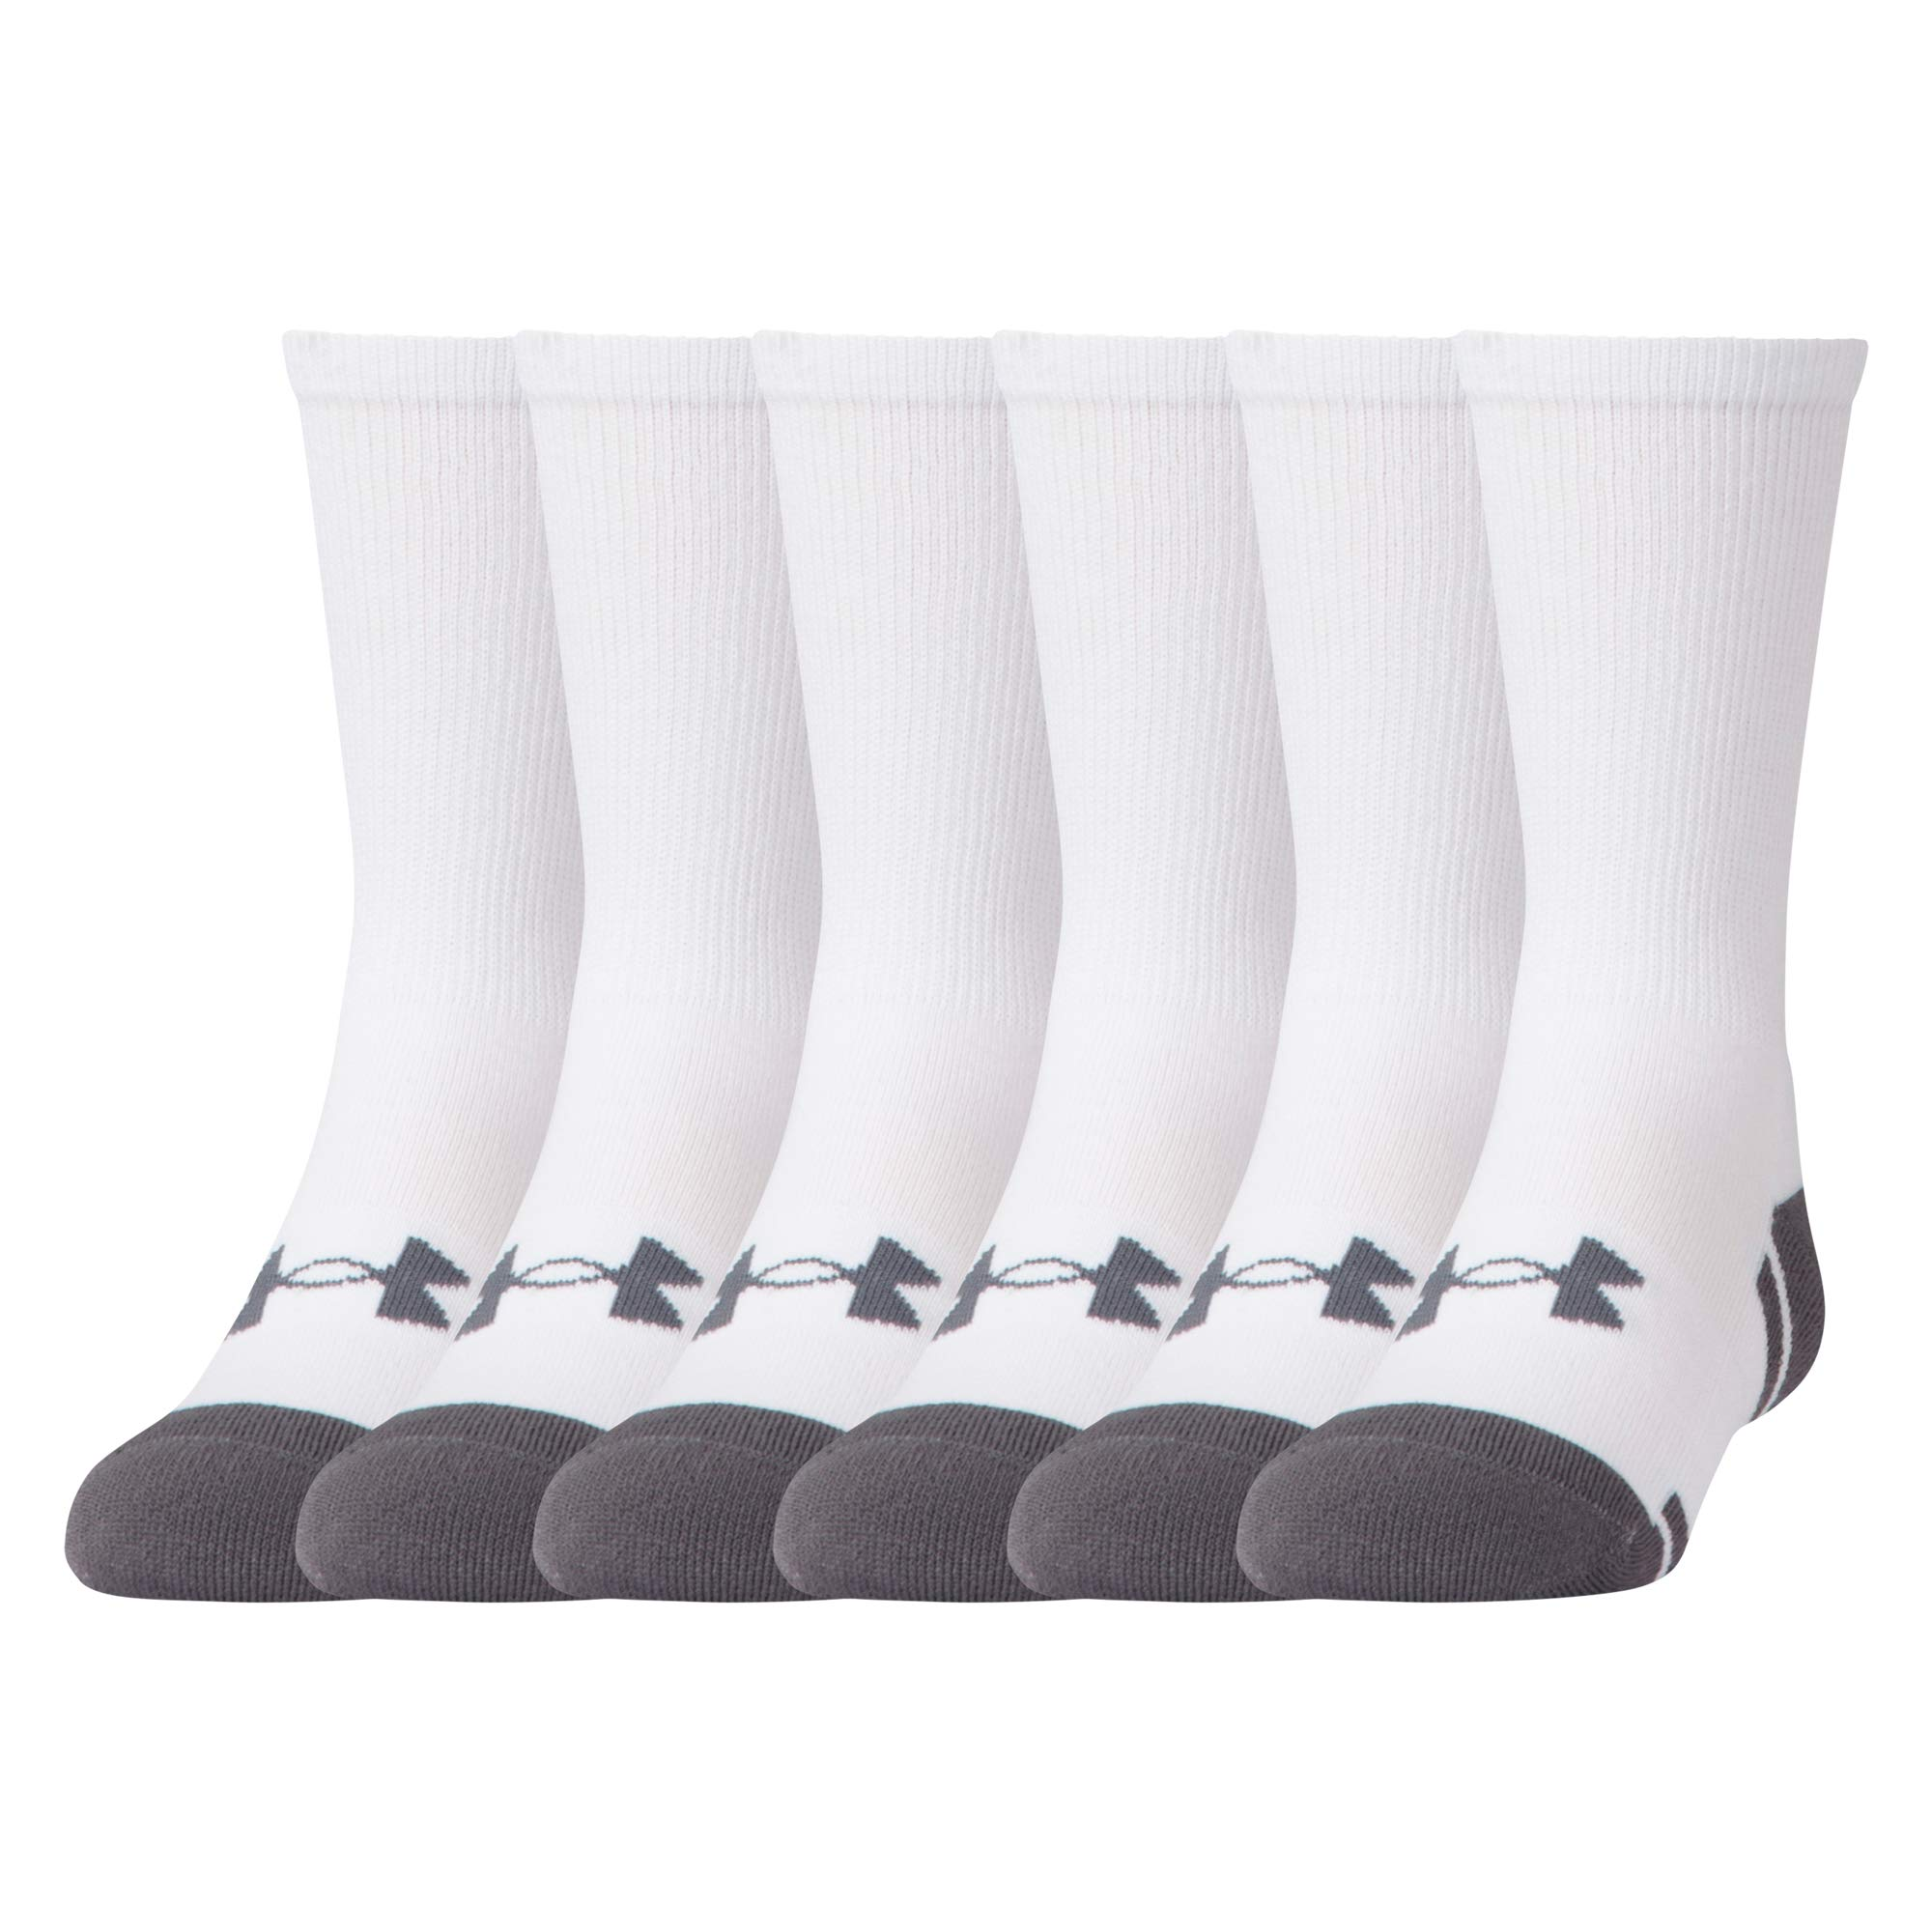 Under Armour Youth Resistor 3.0 Crew Socks, 6 Pairs, White/Graphite, Shoe Size: Youth 13.5K-4Y by Under Armour